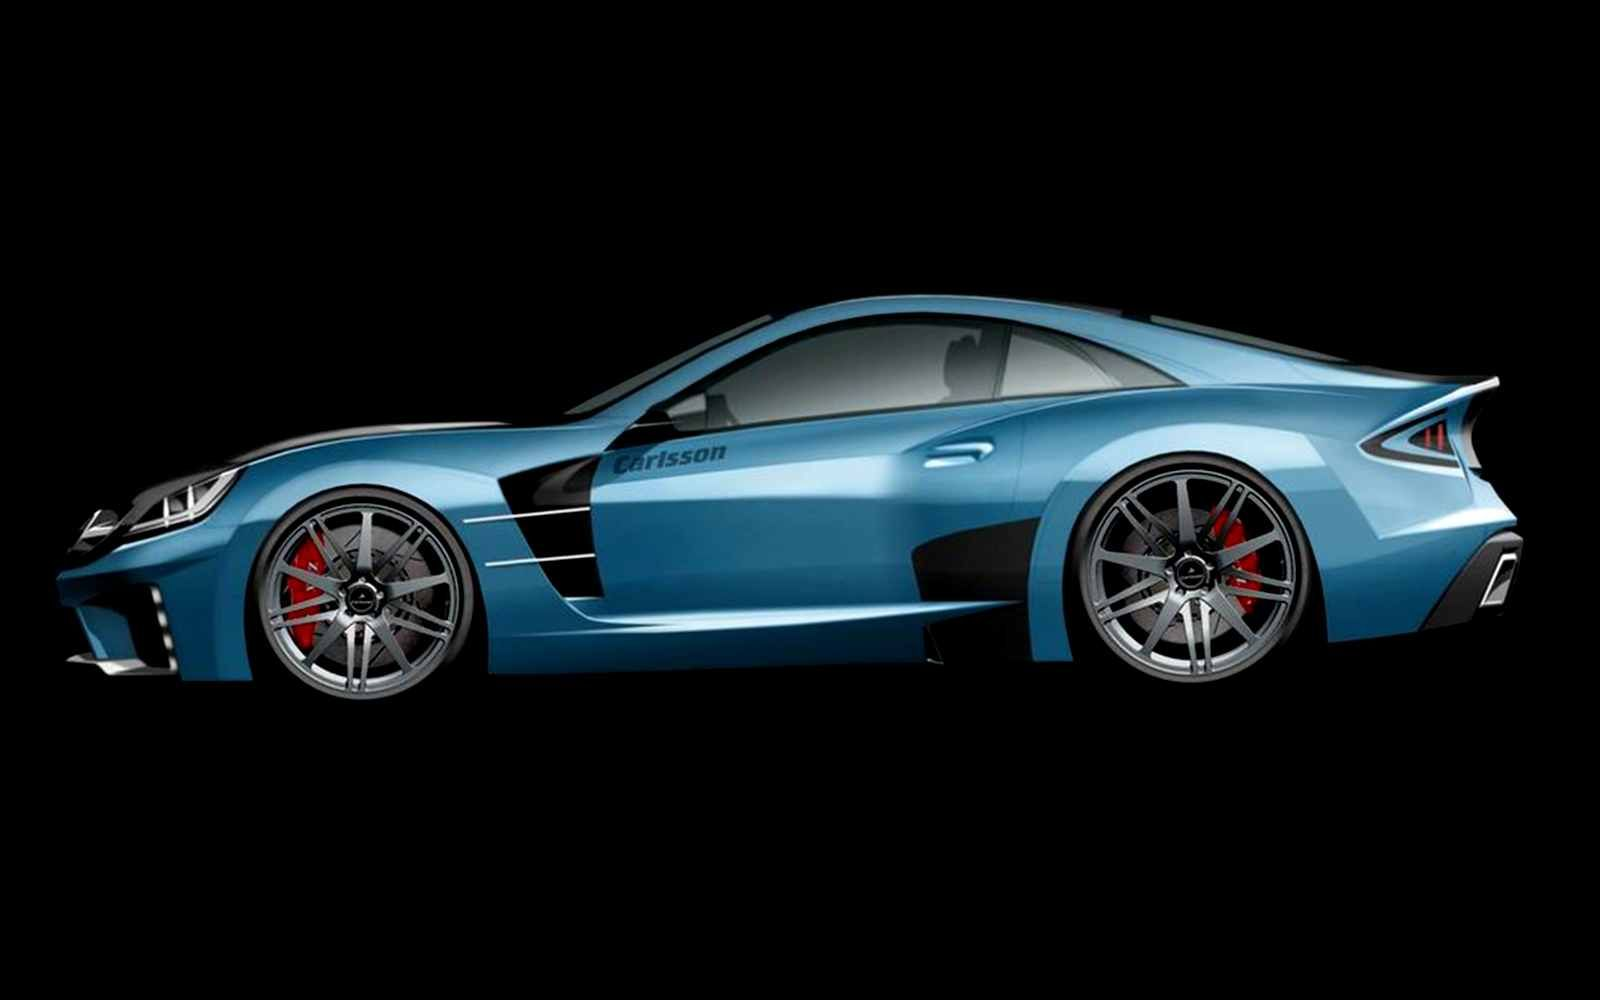 Carlsson C25 Blue Car Awesome Car Wallpapers Car Backgrounds